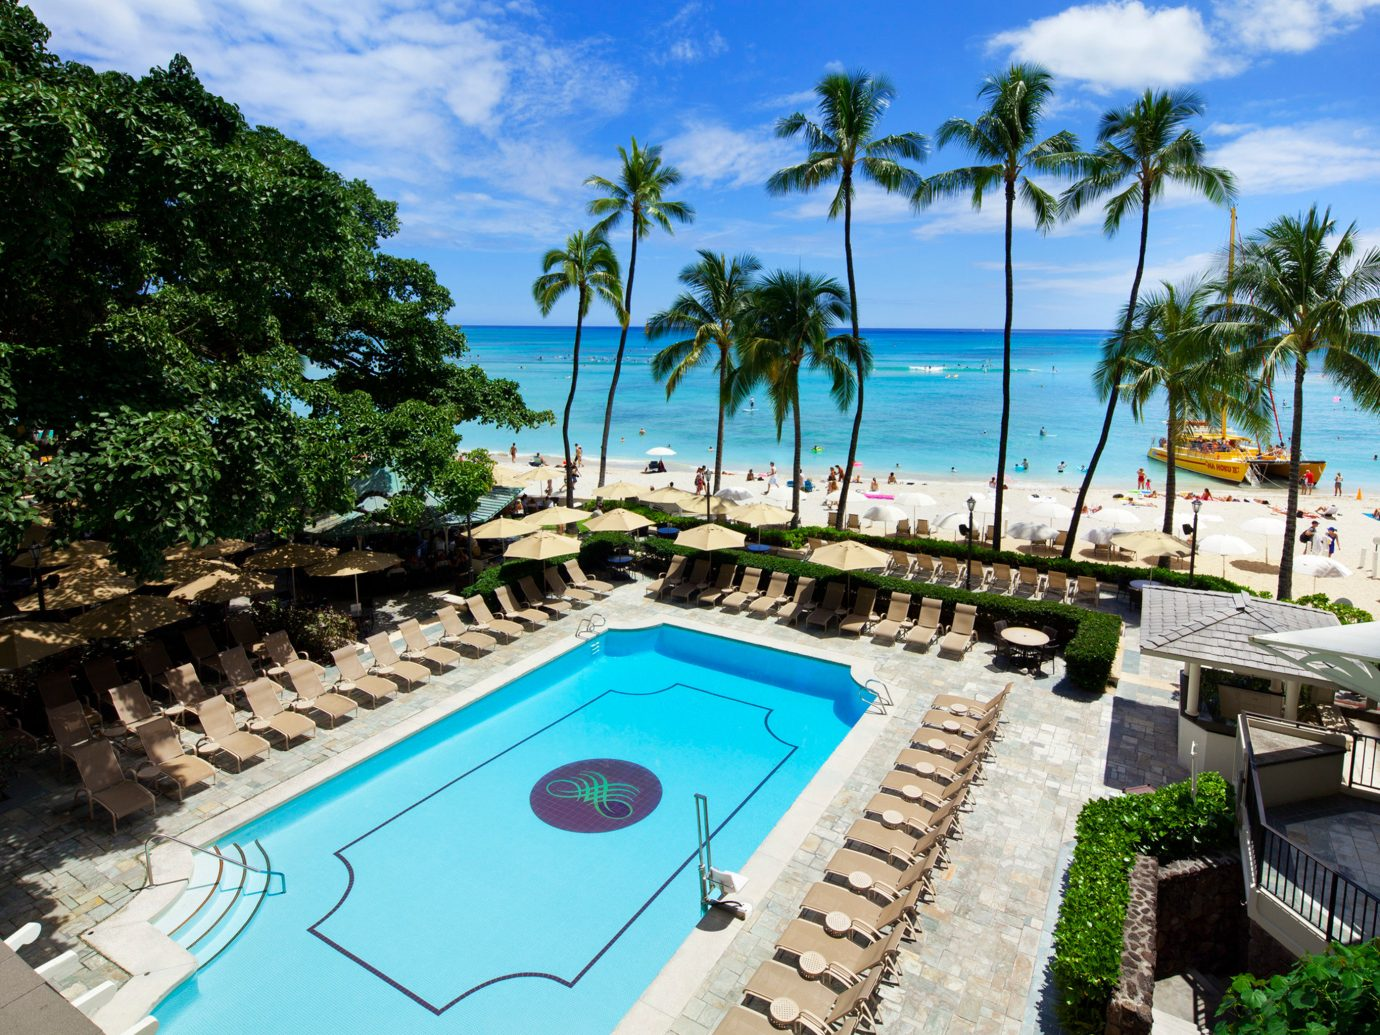 Beachfront Boutique Hotels Hawaii Honolulu Hotels Play Pool Resort Scenic views Trip Ideas tree outdoor swimming pool leisure property vacation estate caribbean Villa palm resort town Lagoon bay mansion plant shore